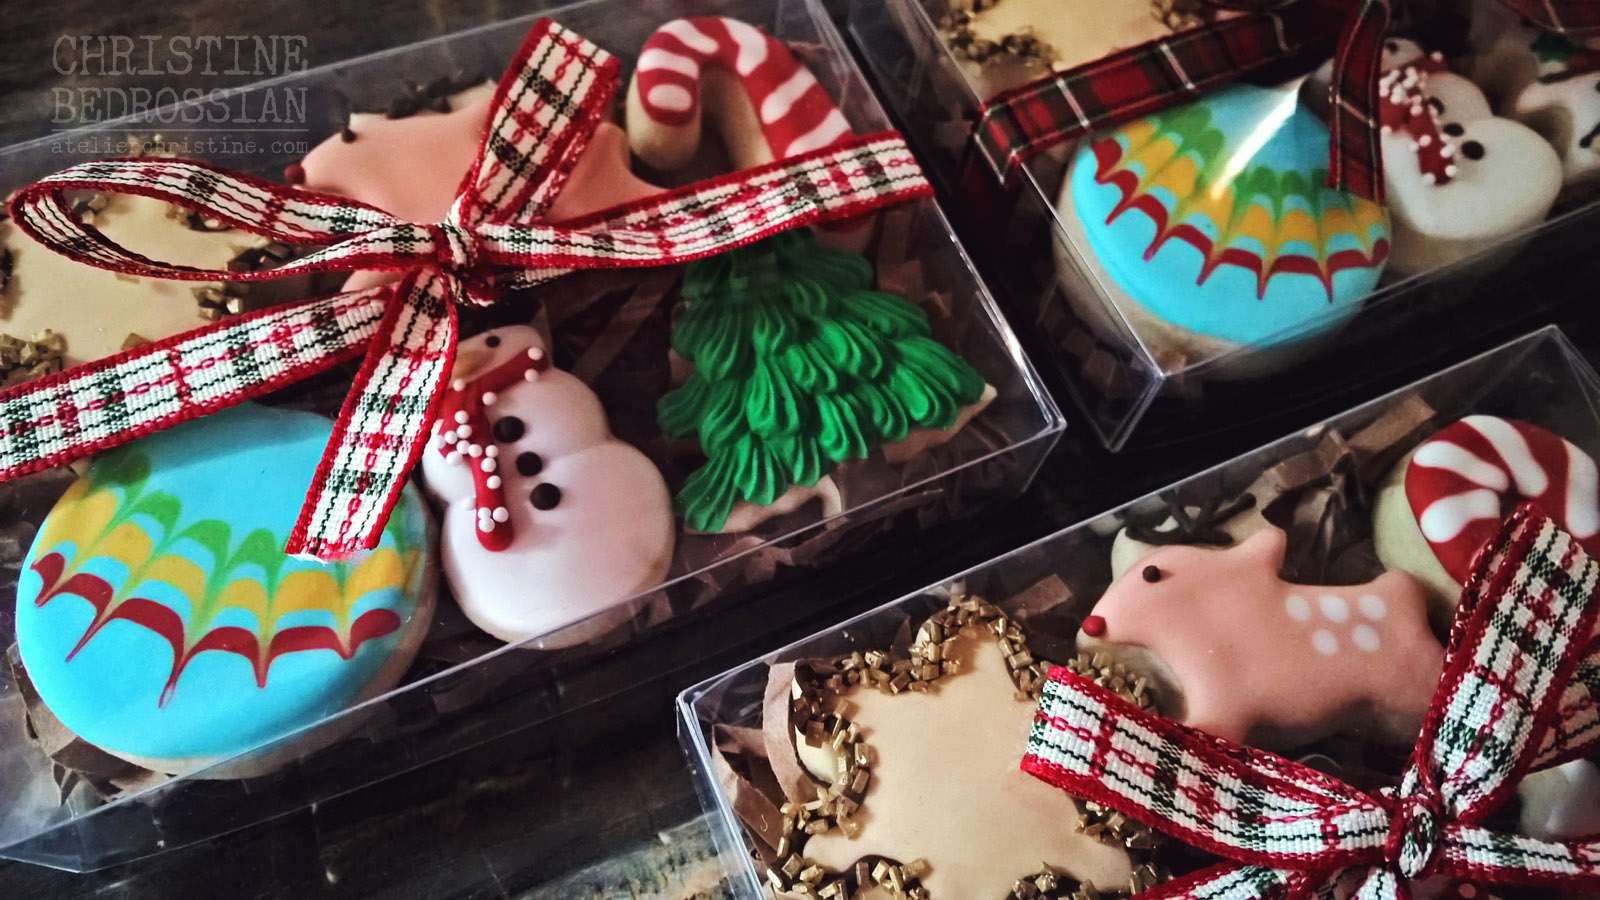 le Shoppe | Winter Holiday Baking, Christmas Cookie Gift ...